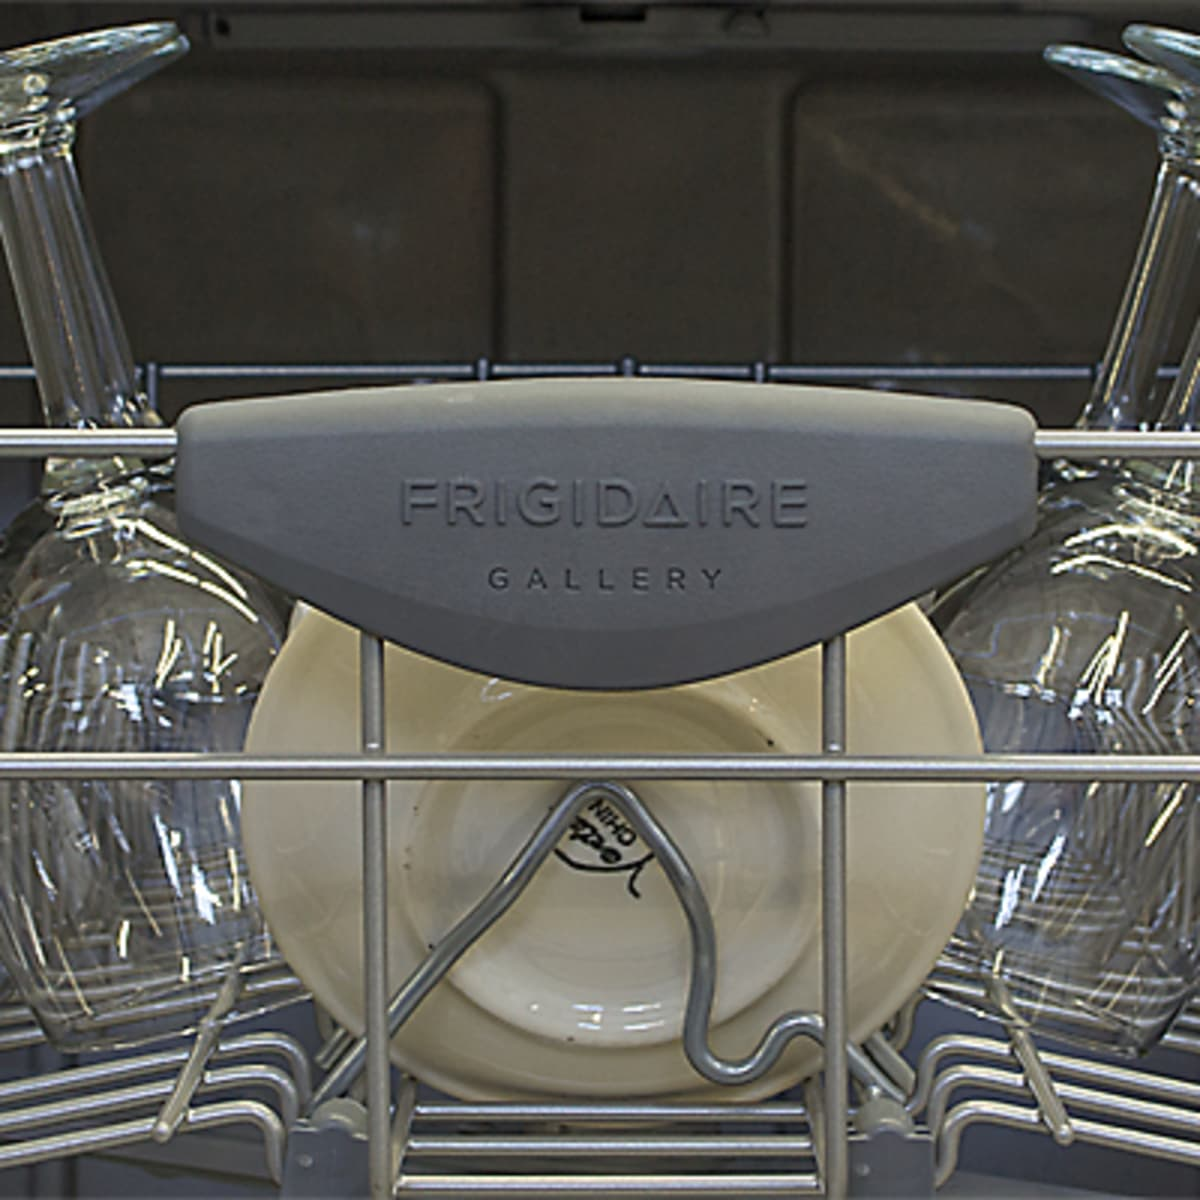 Frigidaire Gallery FGBD2438PF Review - Reviewed Dishwashers